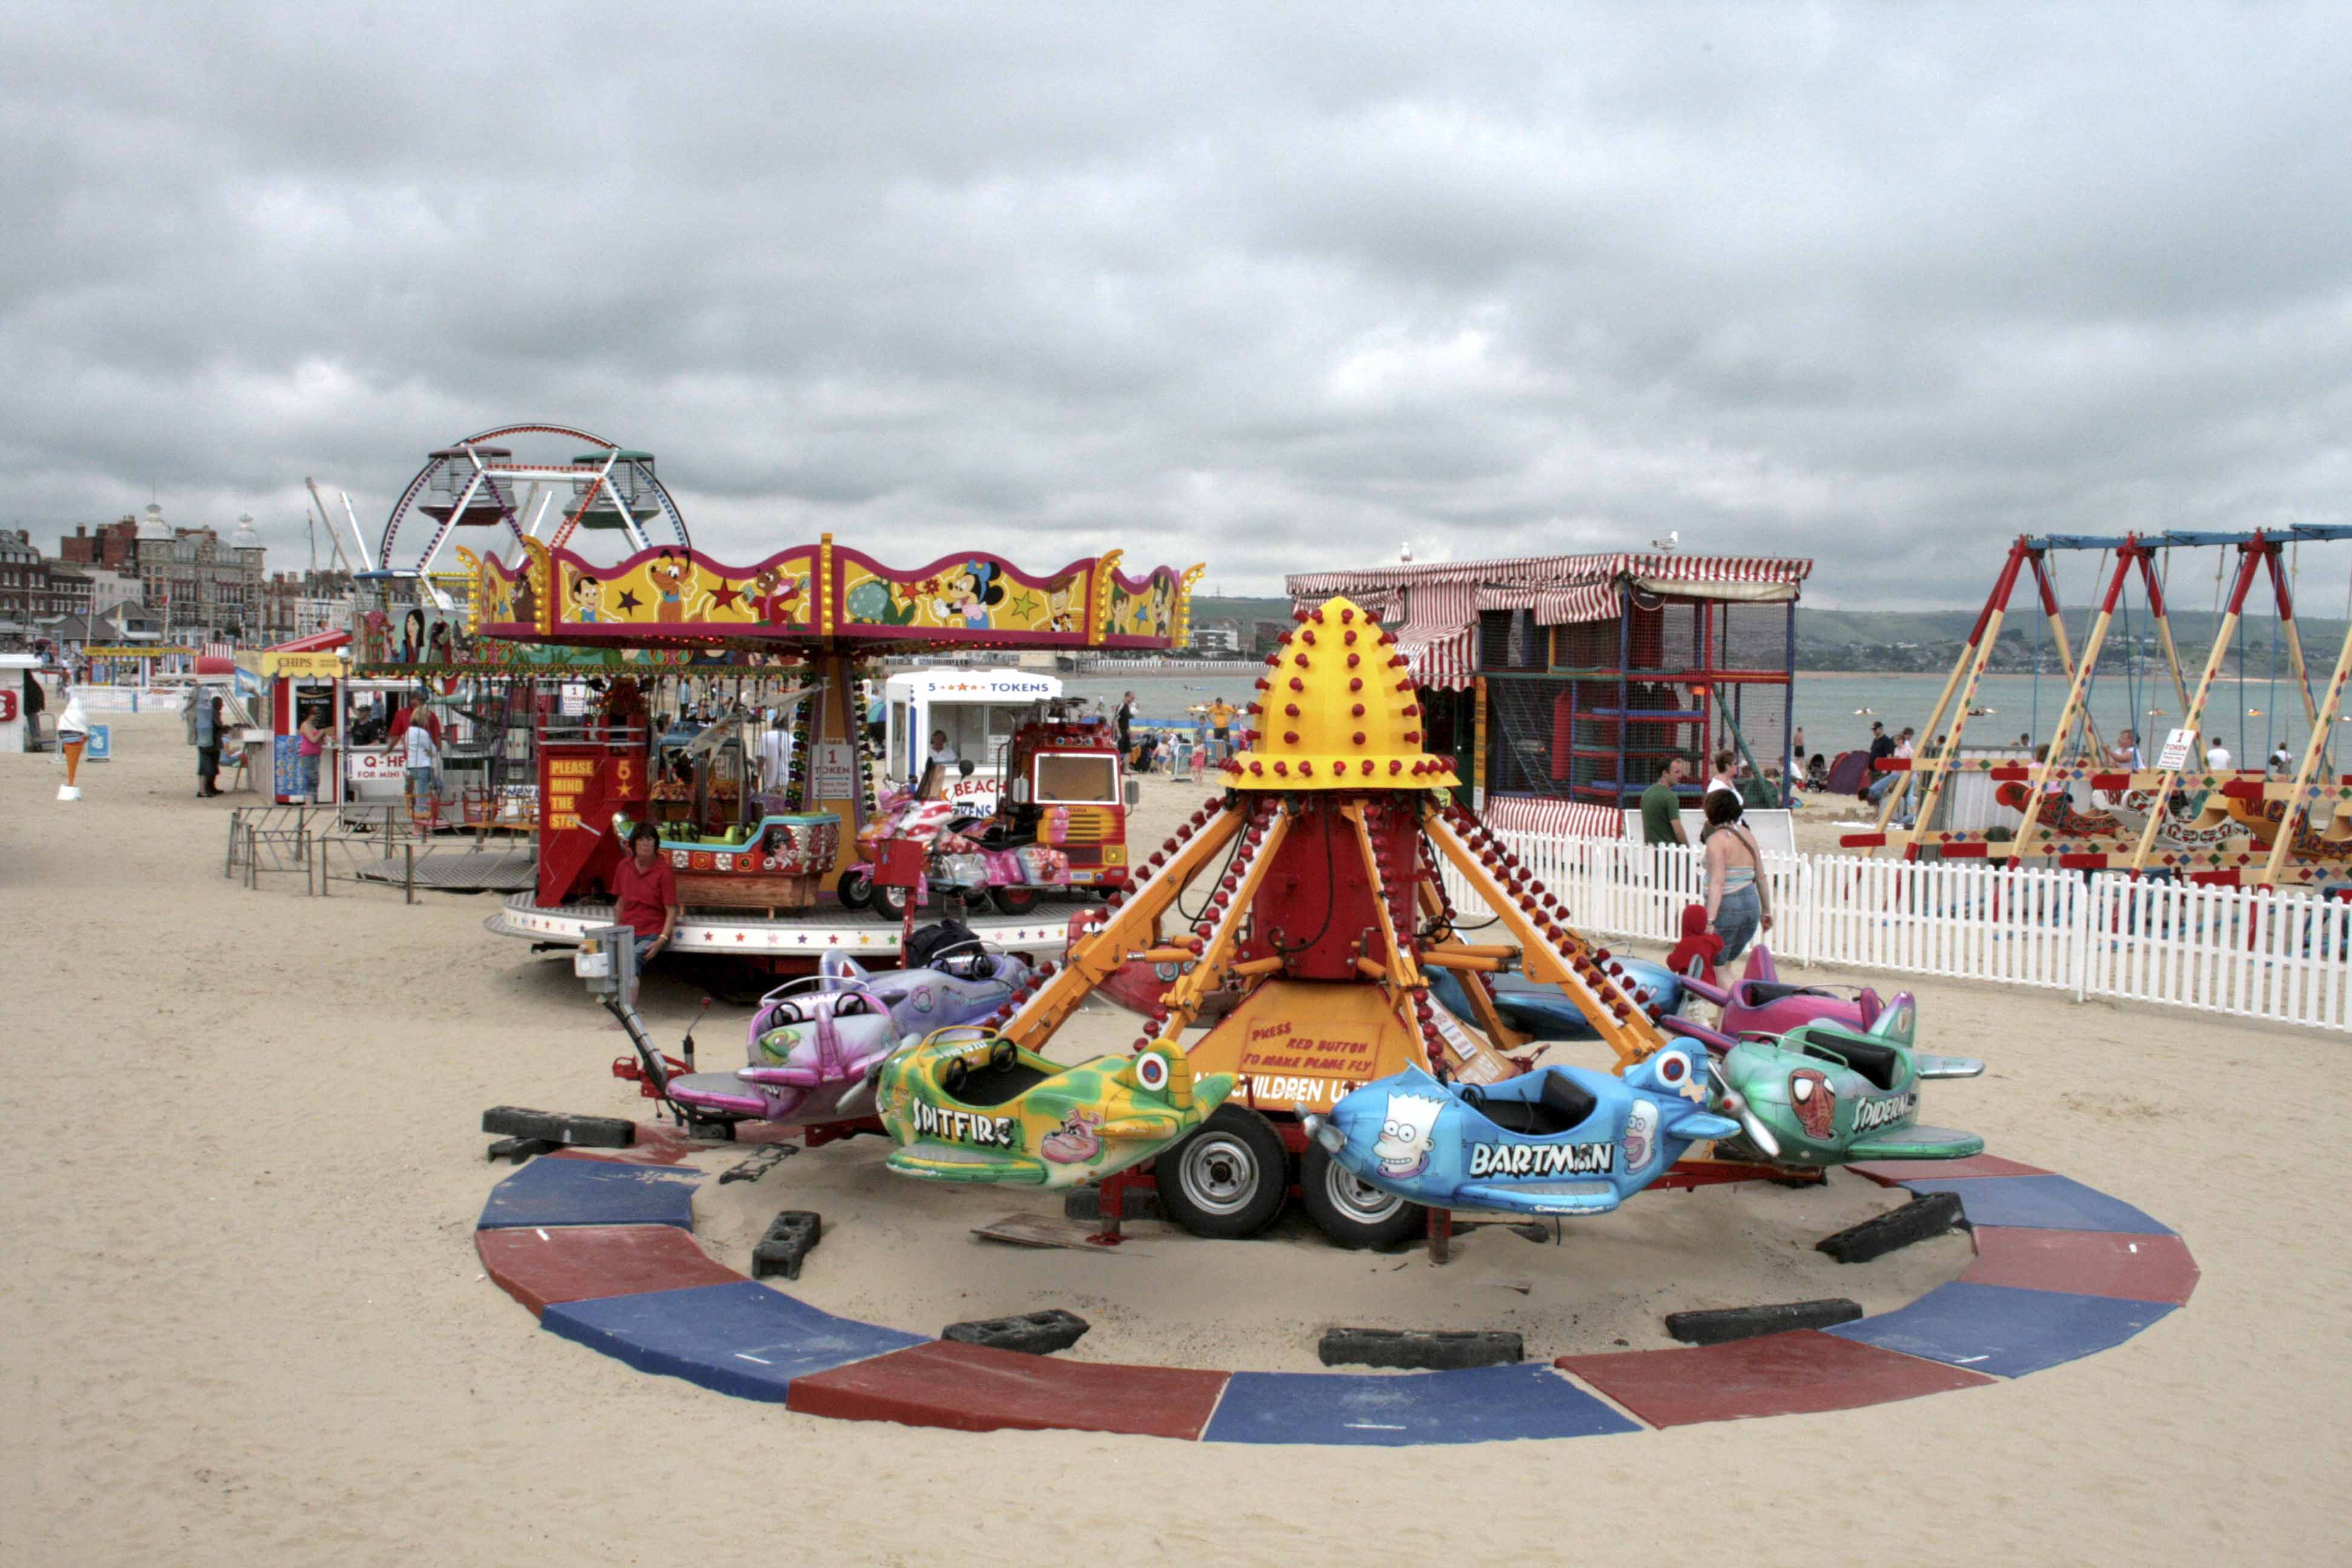 Fairground at Weymouth